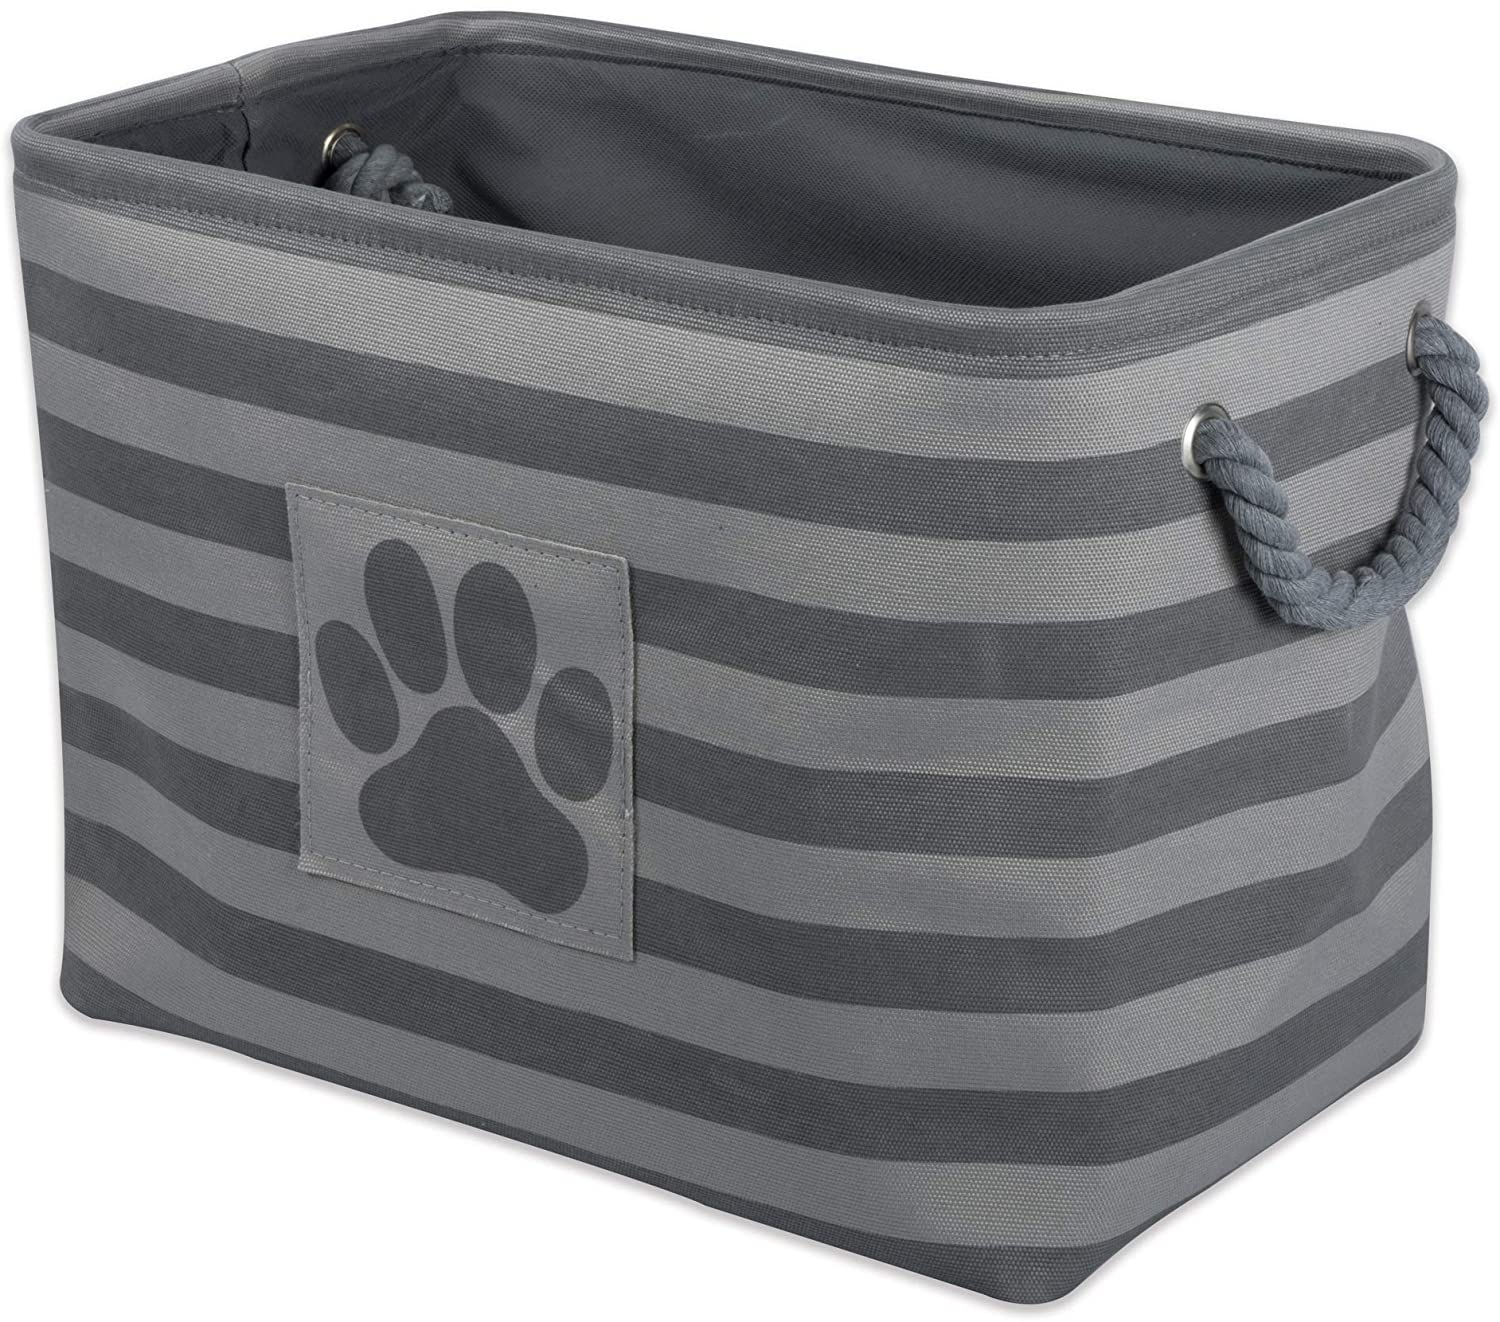 Bone Dry Striped Paw Patch Bin, Large Rectangle, Gray